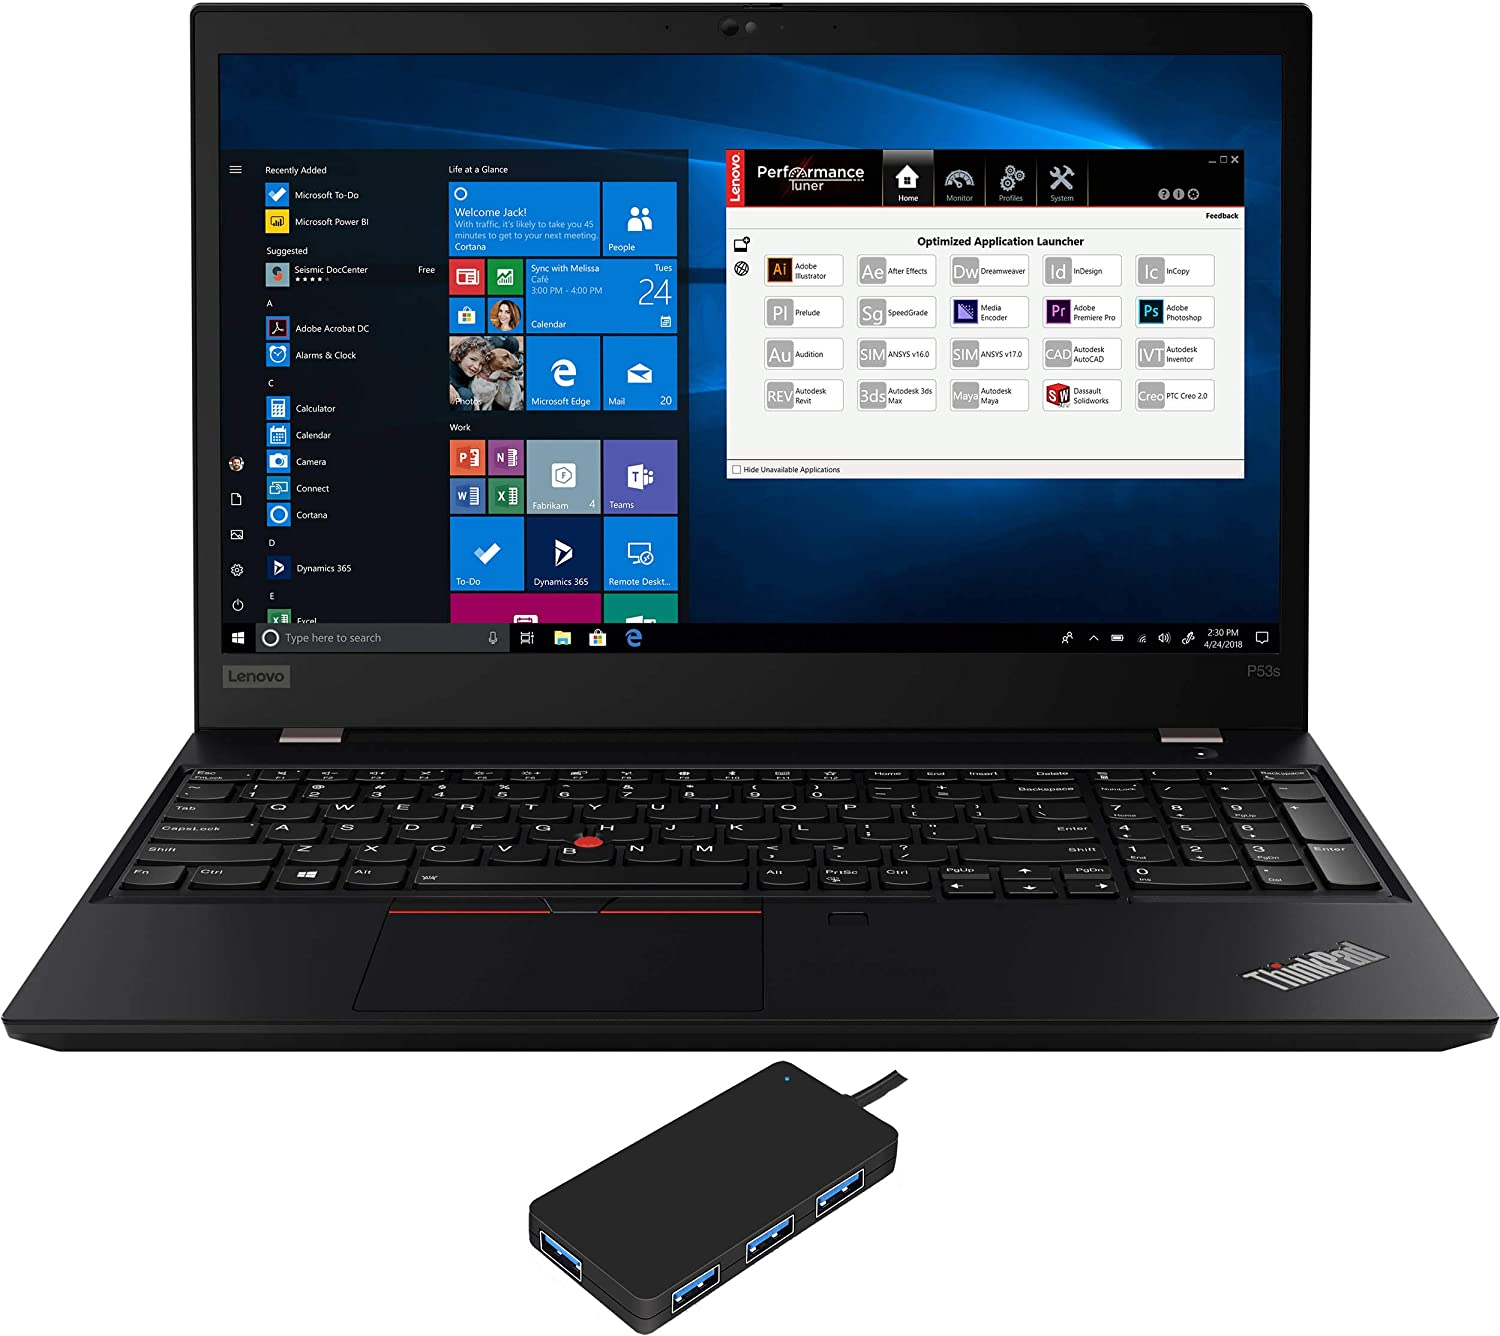 "Lenovo ThinkPad P53s Workstation Laptop (Intel i7-8565U 4-Core, 40GB RAM, 256GB PCIe SSD, Quadro P520, 15.6"" Full HD (1920x1080), Fingerprint, WiFi, Bluetooth, Webcam, Win 10 Pro) with USB3.0 Hub"